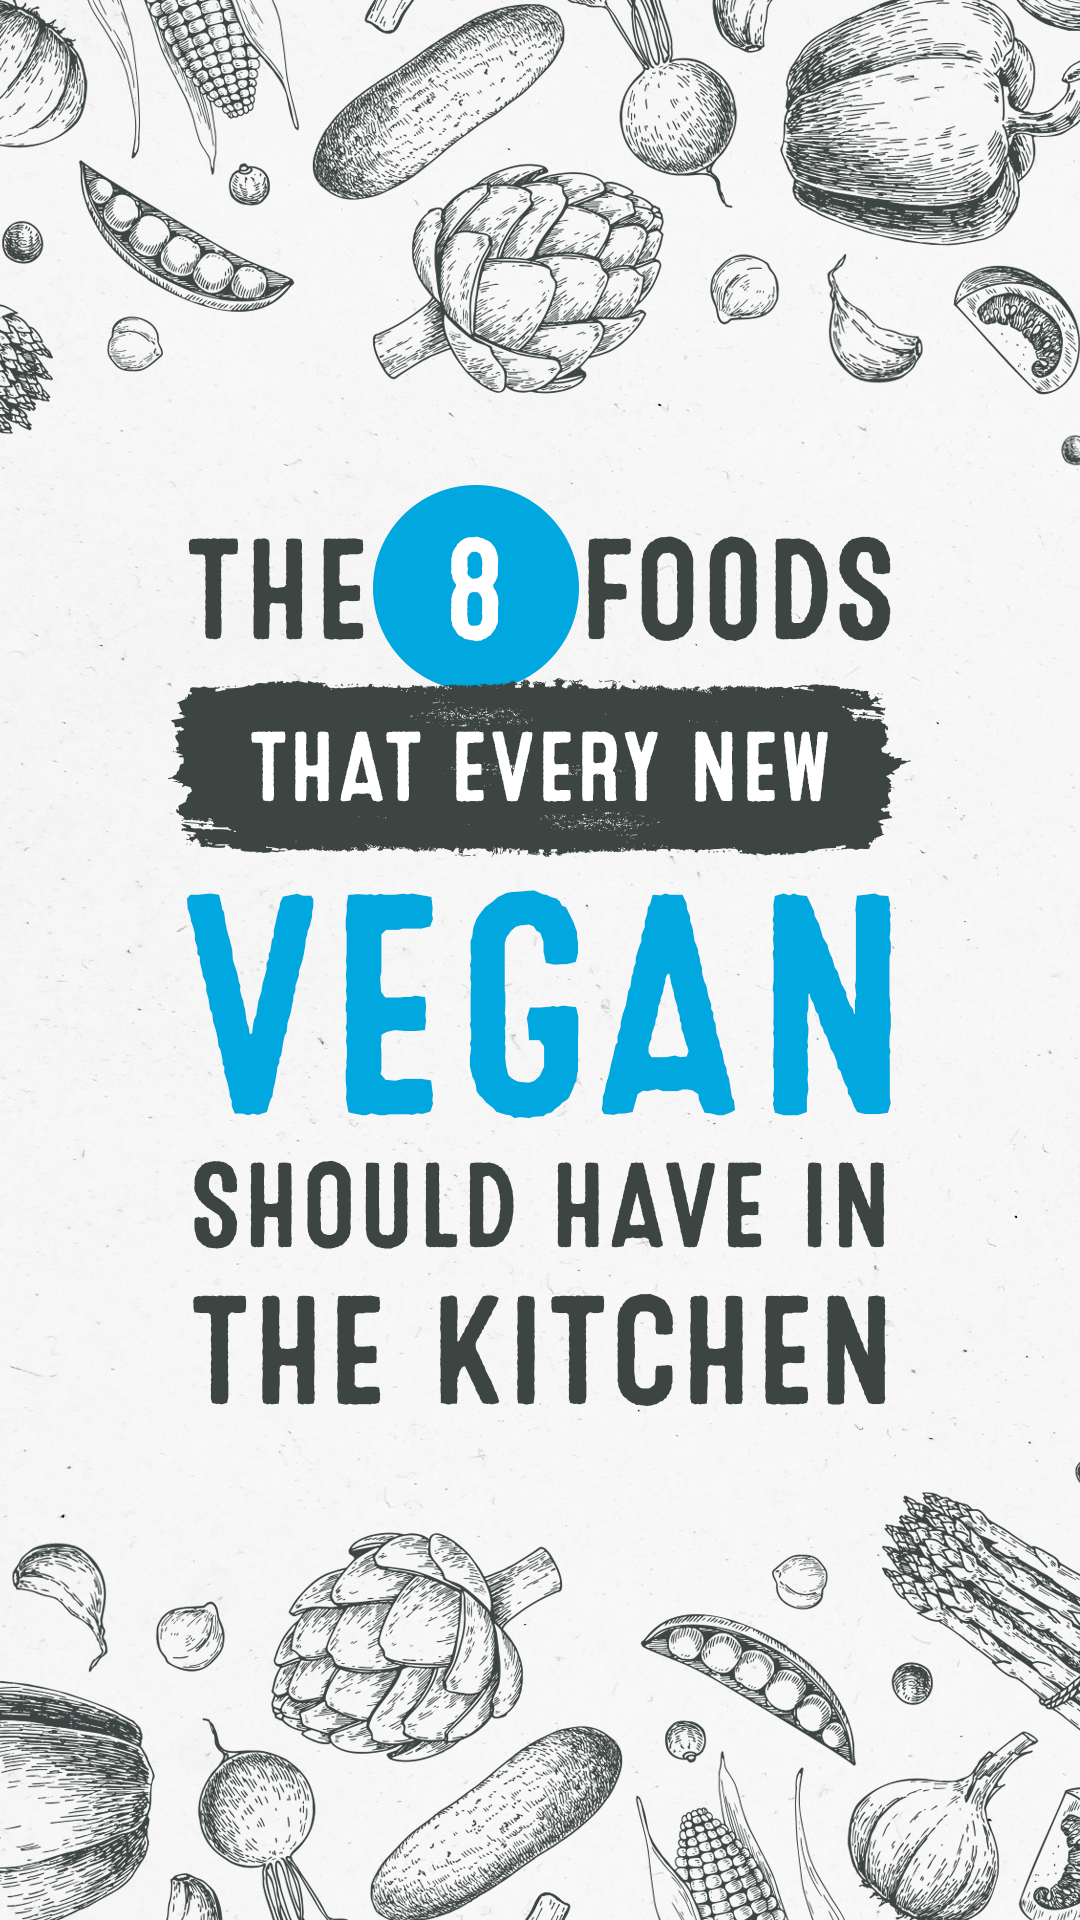 The 8 Foods Every New Vegan Should Have in the Kitchen